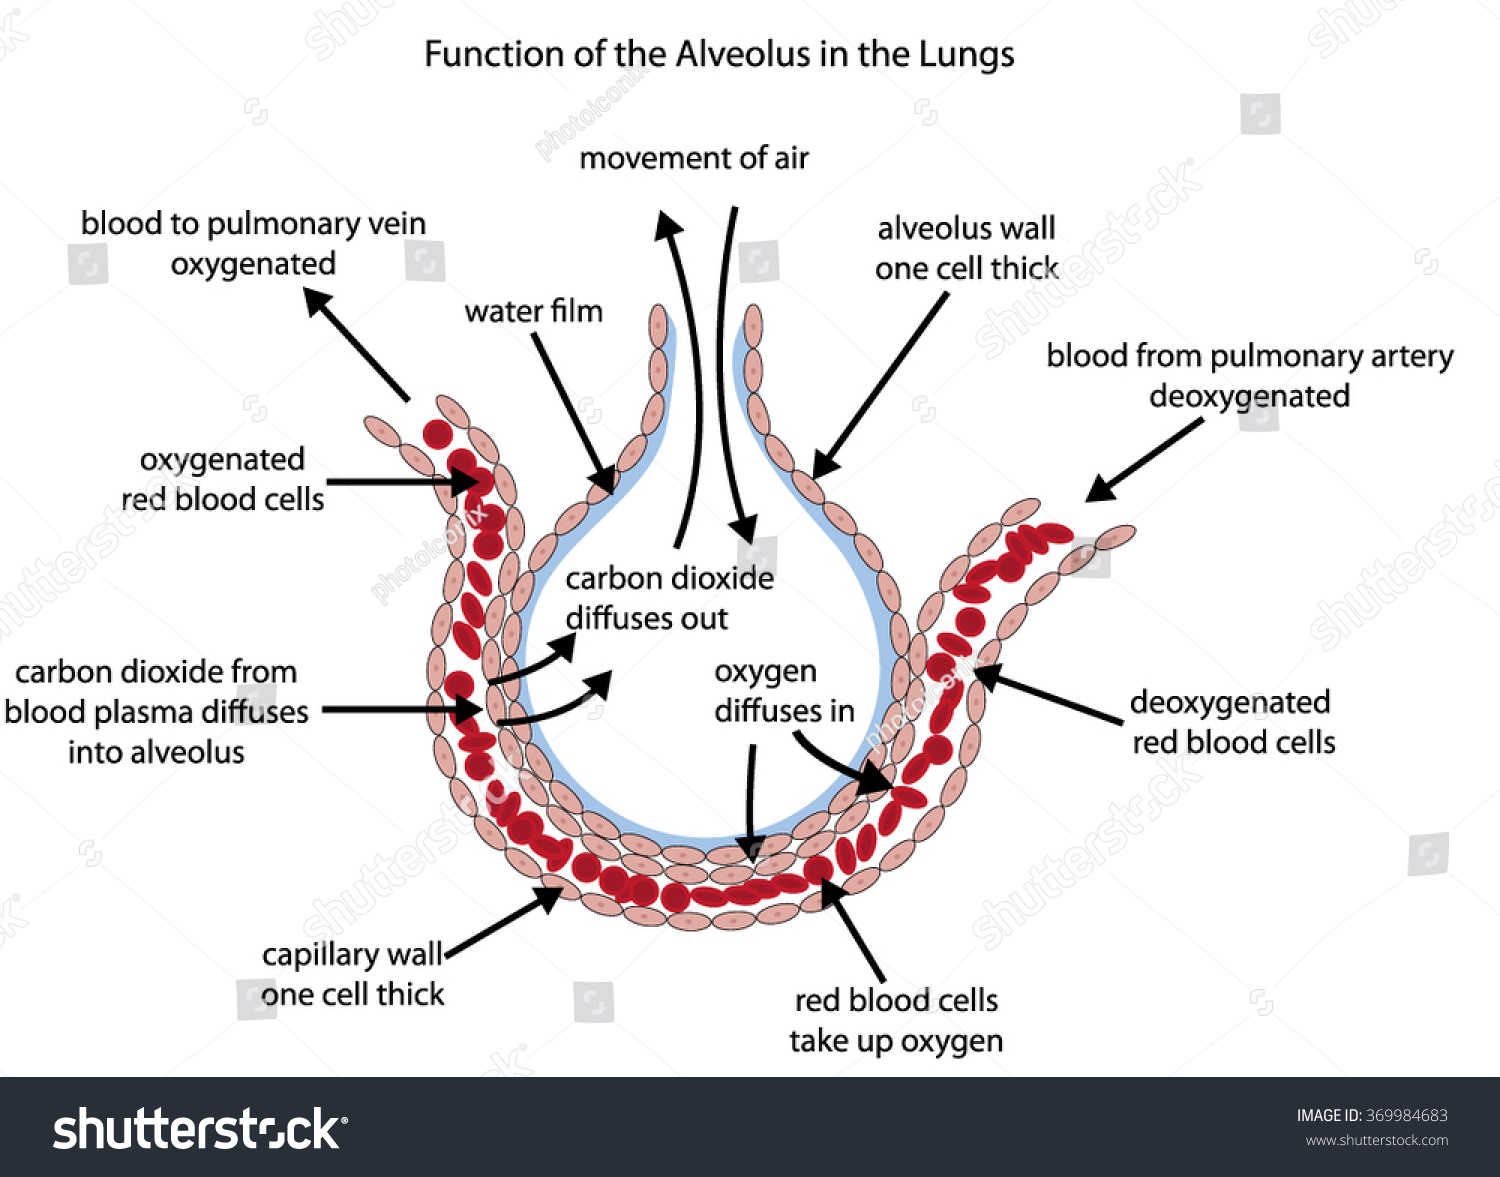 lung alveoli diagram block definition fully labelled alveolus lungs showing stock vector